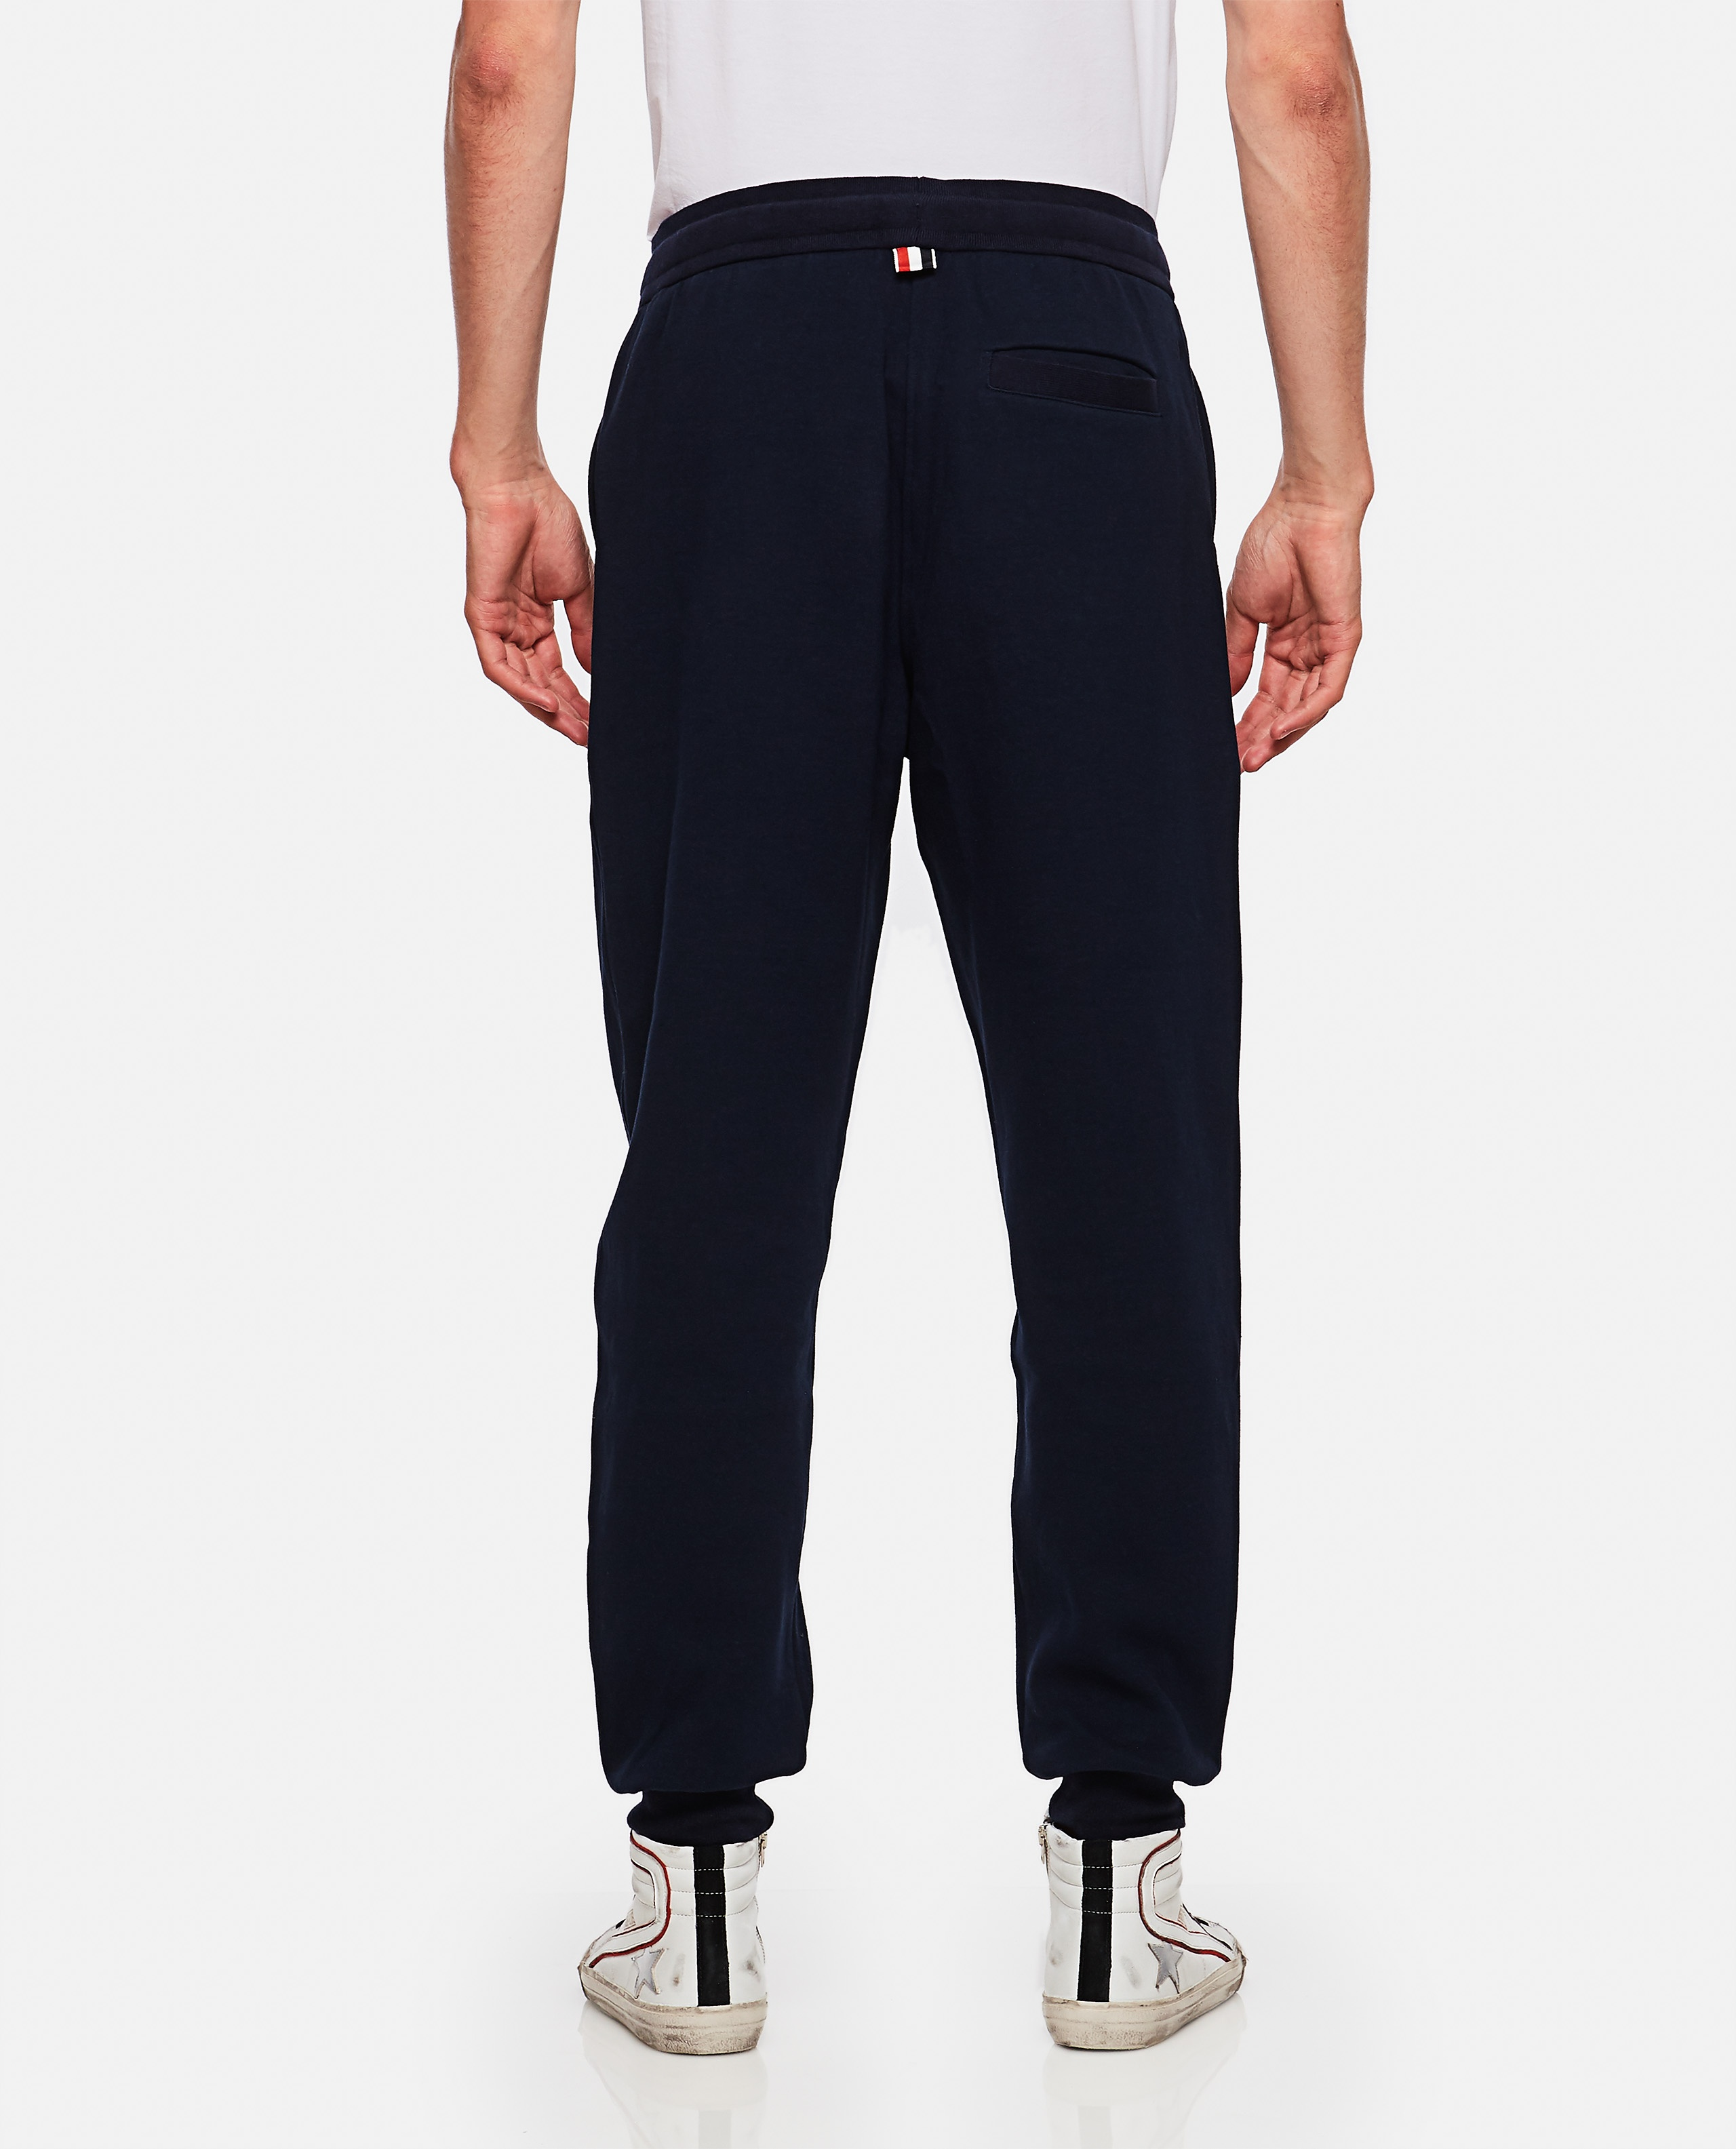 Sports trousers with drawstring Men Thom Browne 000253550037452 3